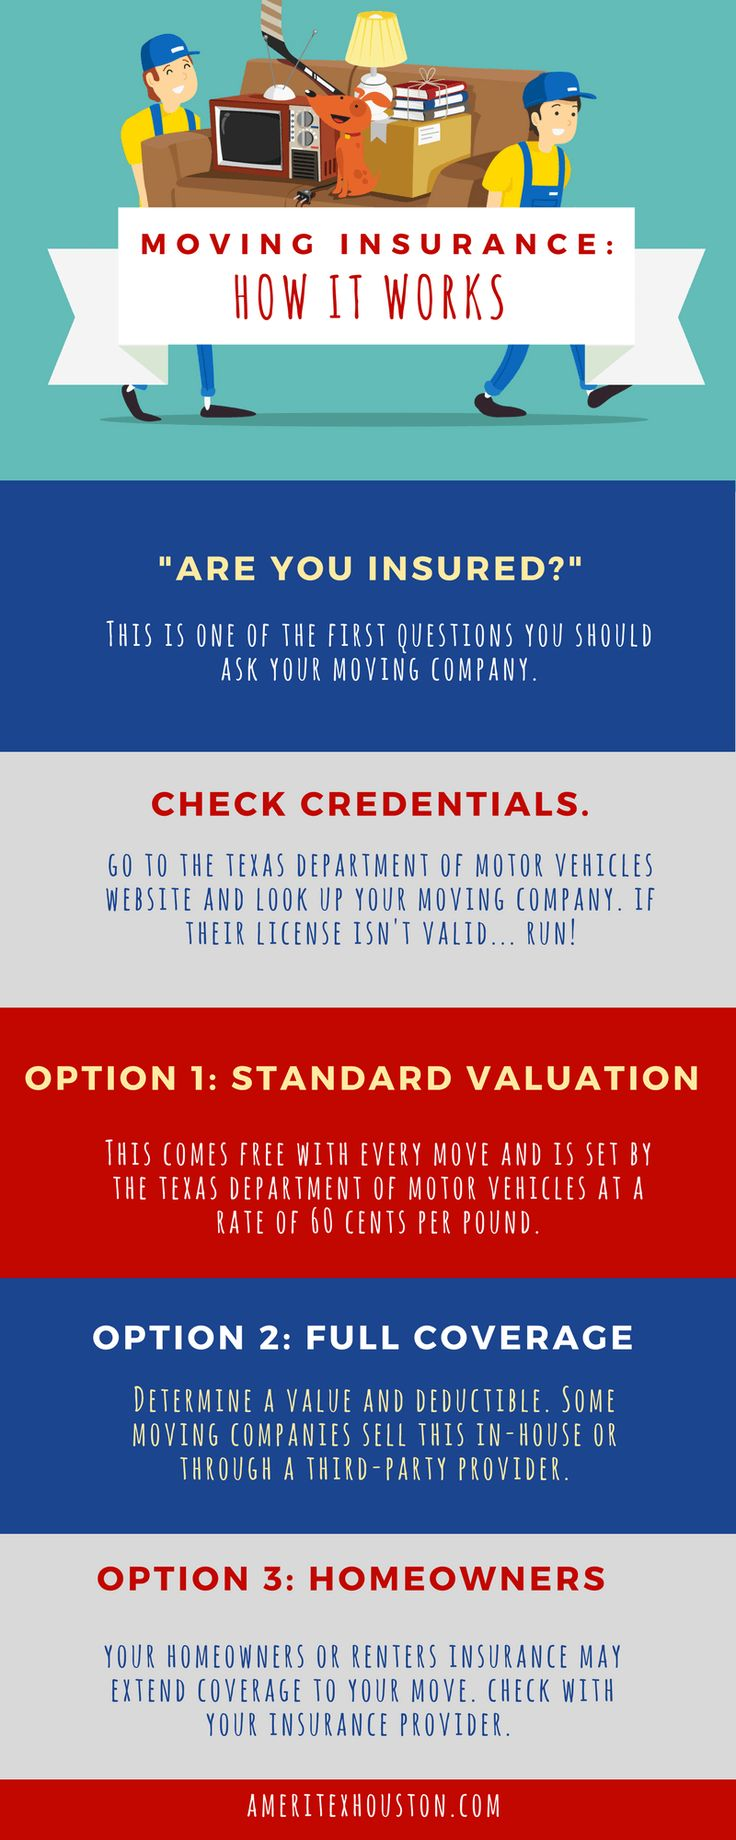 Why Moving Insurance Is A Smart Choice